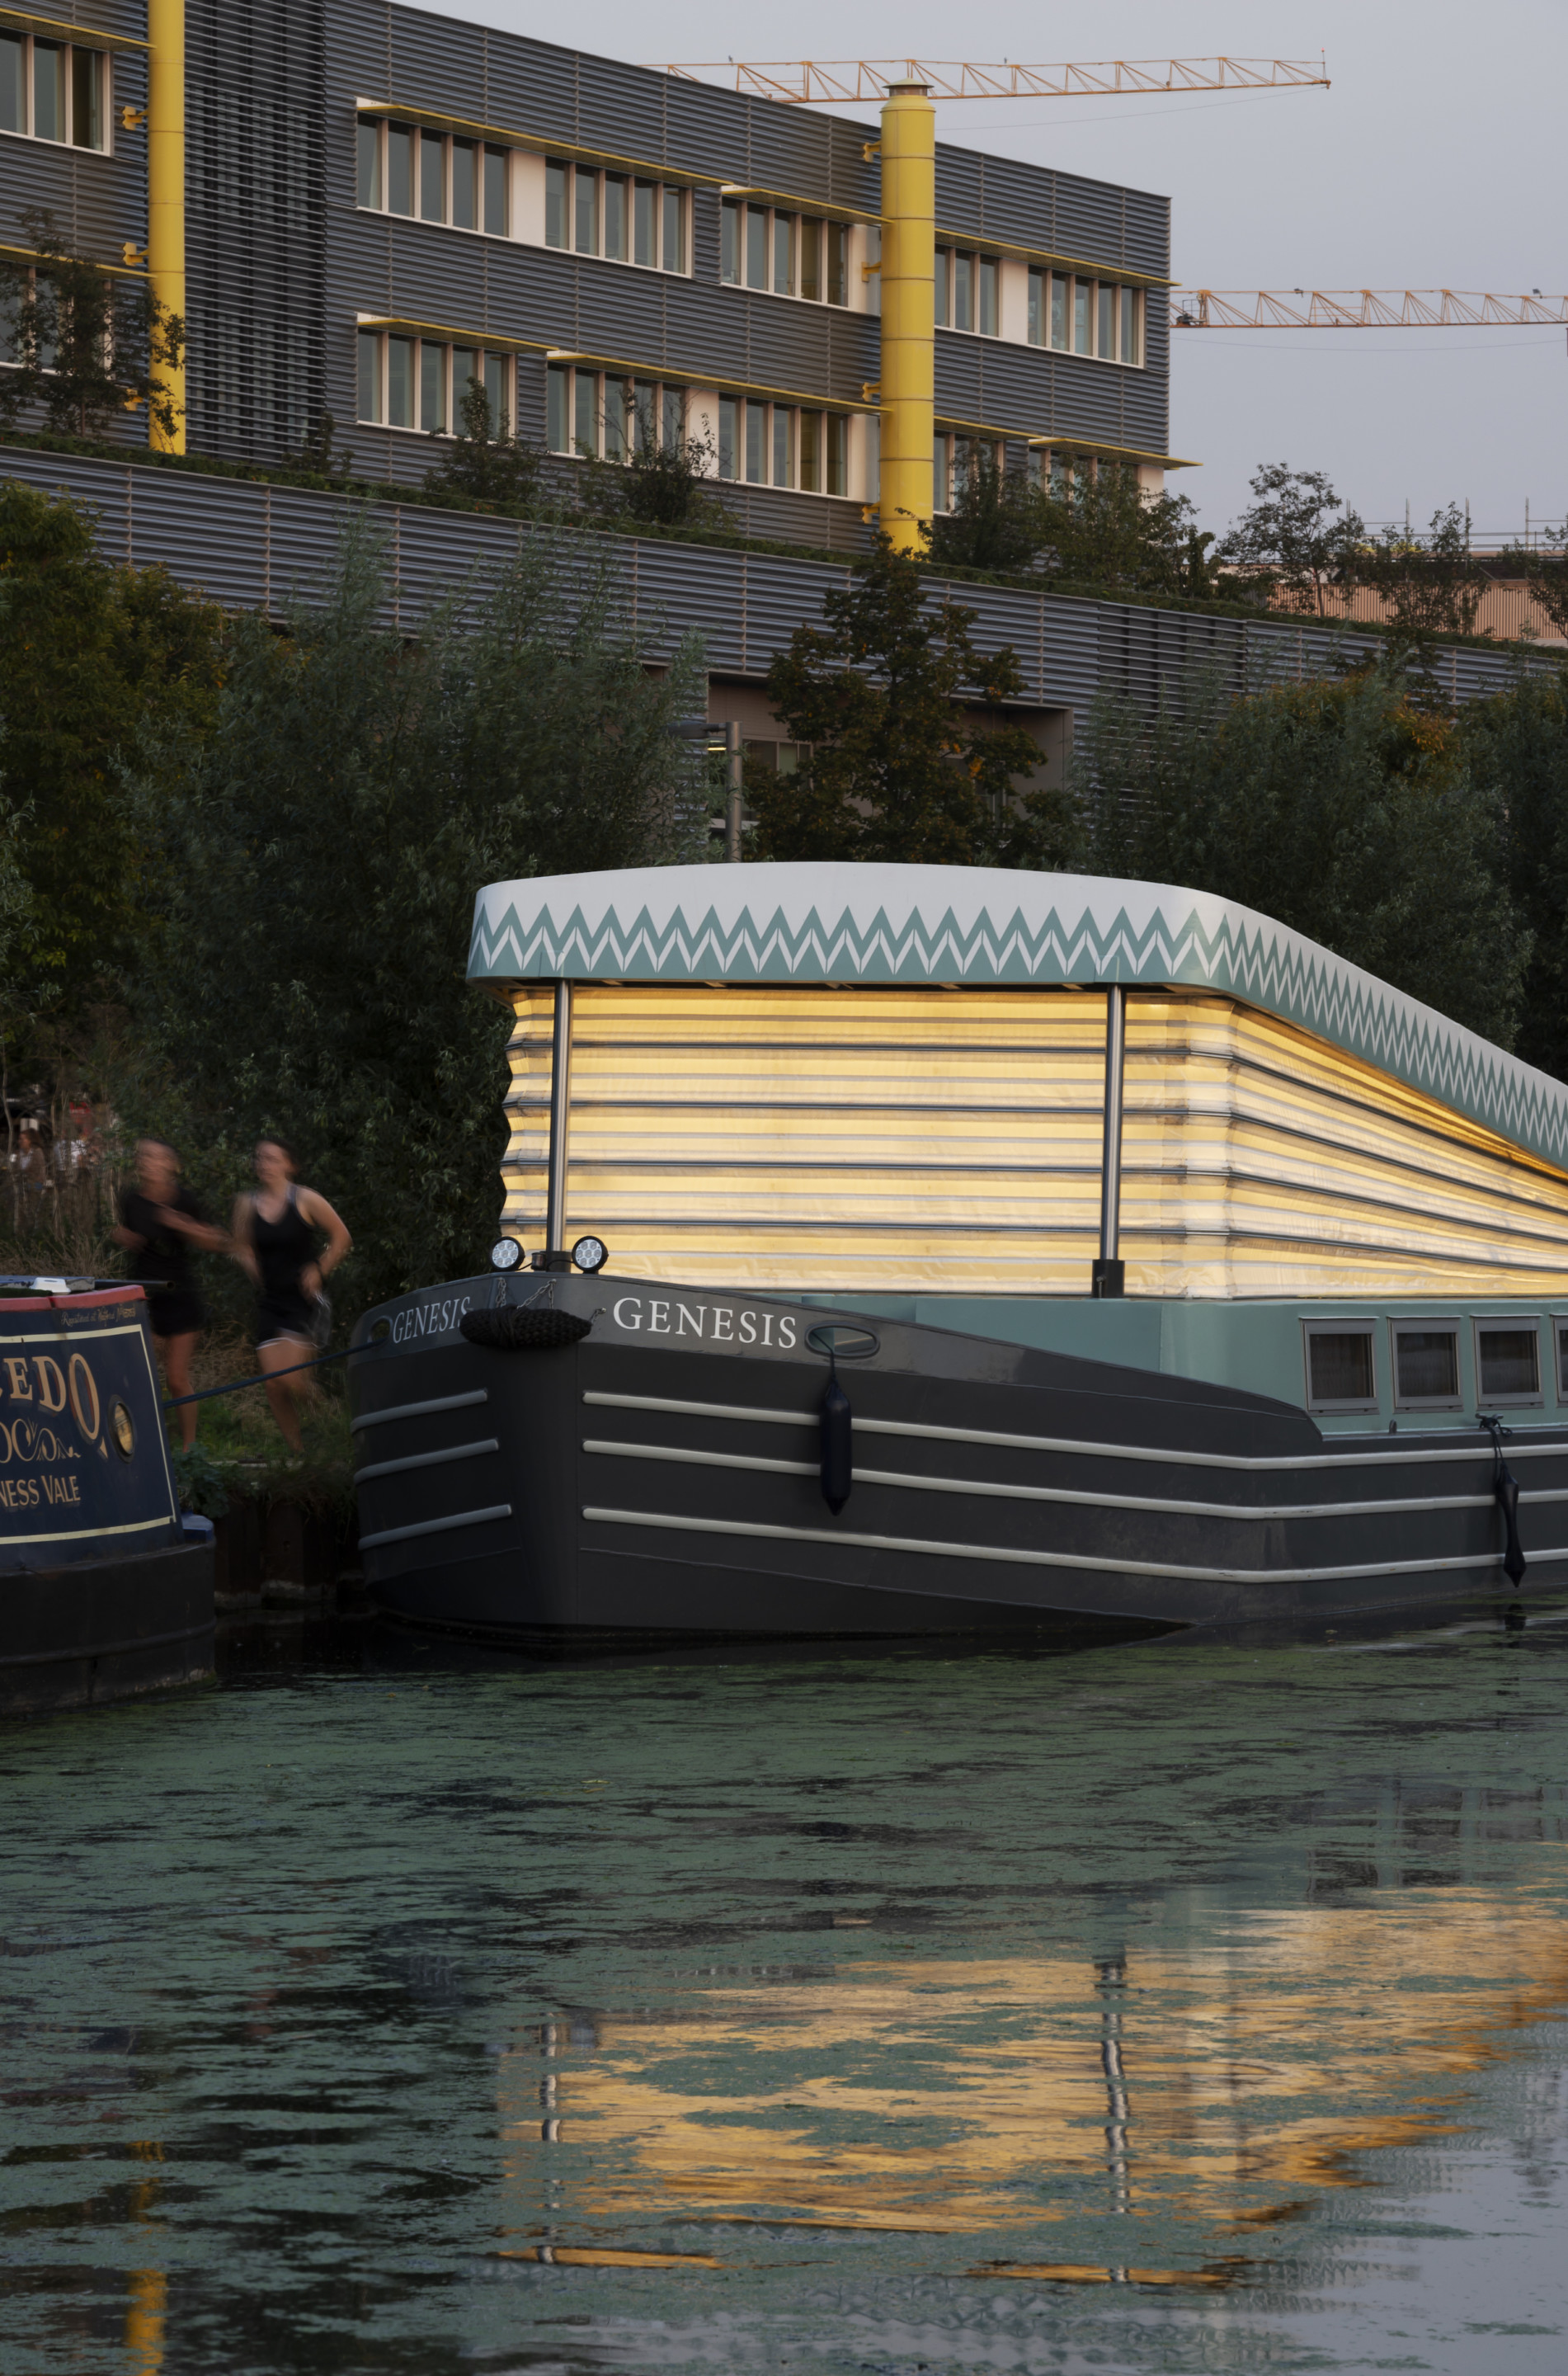 a floating church-boat in london